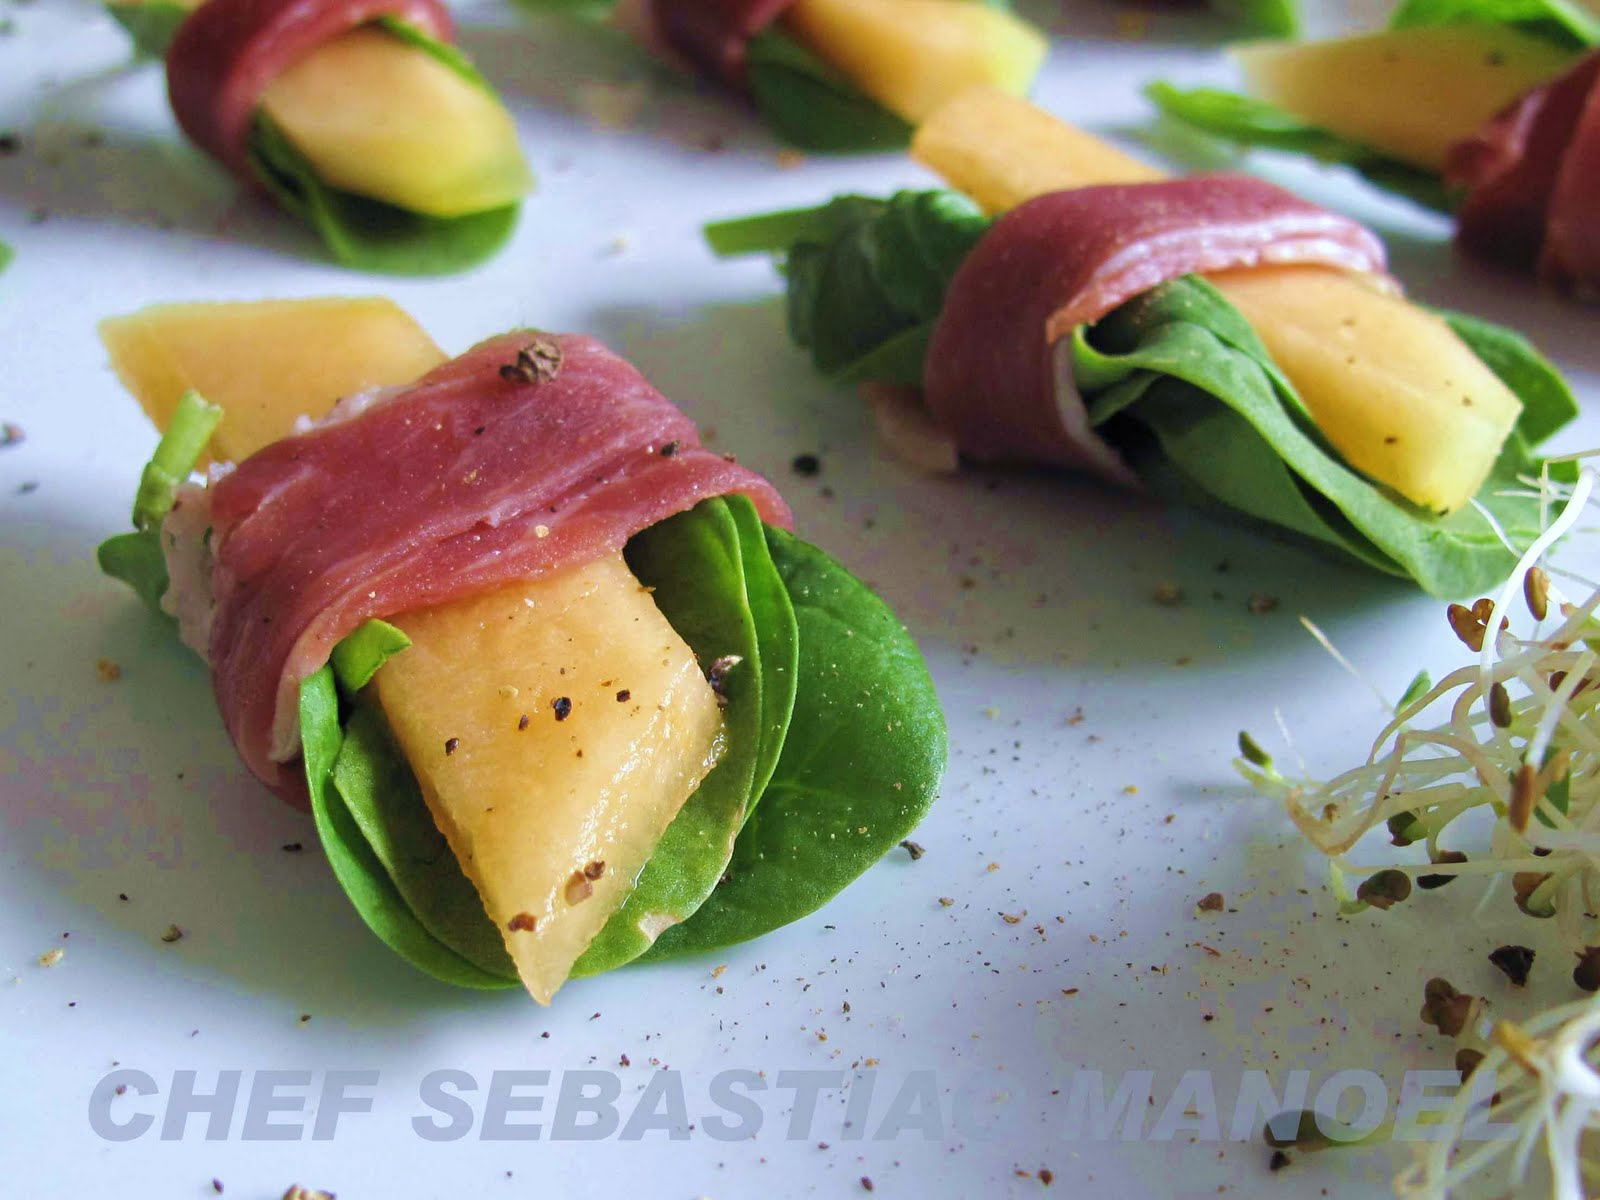 wrapped melon with prosciutto wrapped melon typical cantaloupe wrapped ...